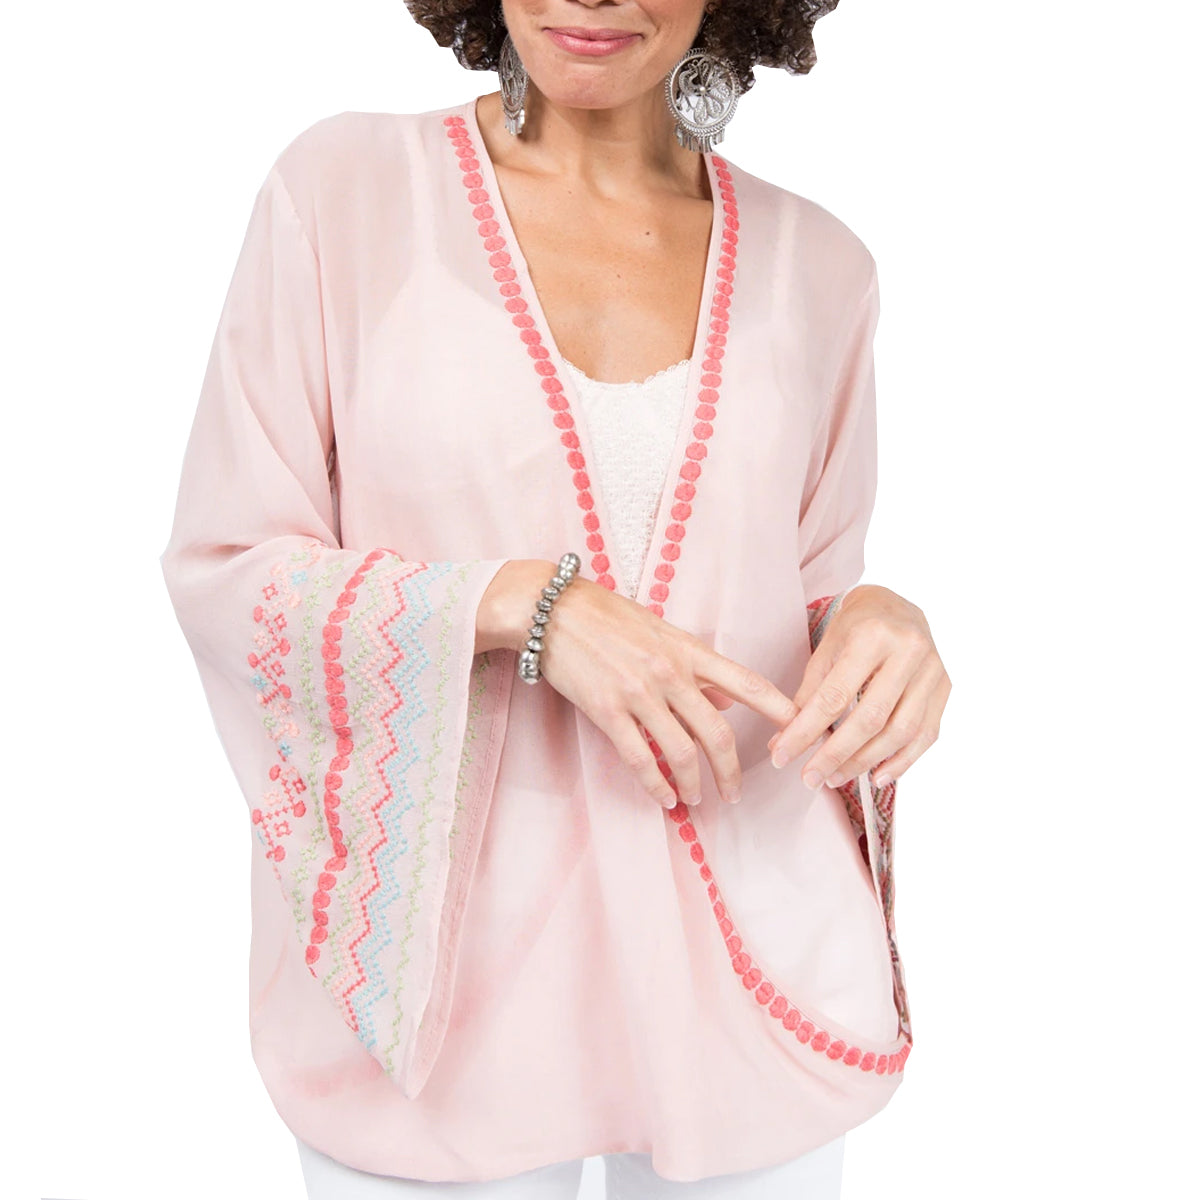 Ivy Jane Women's Wrapped in Embroidery Top - Blush